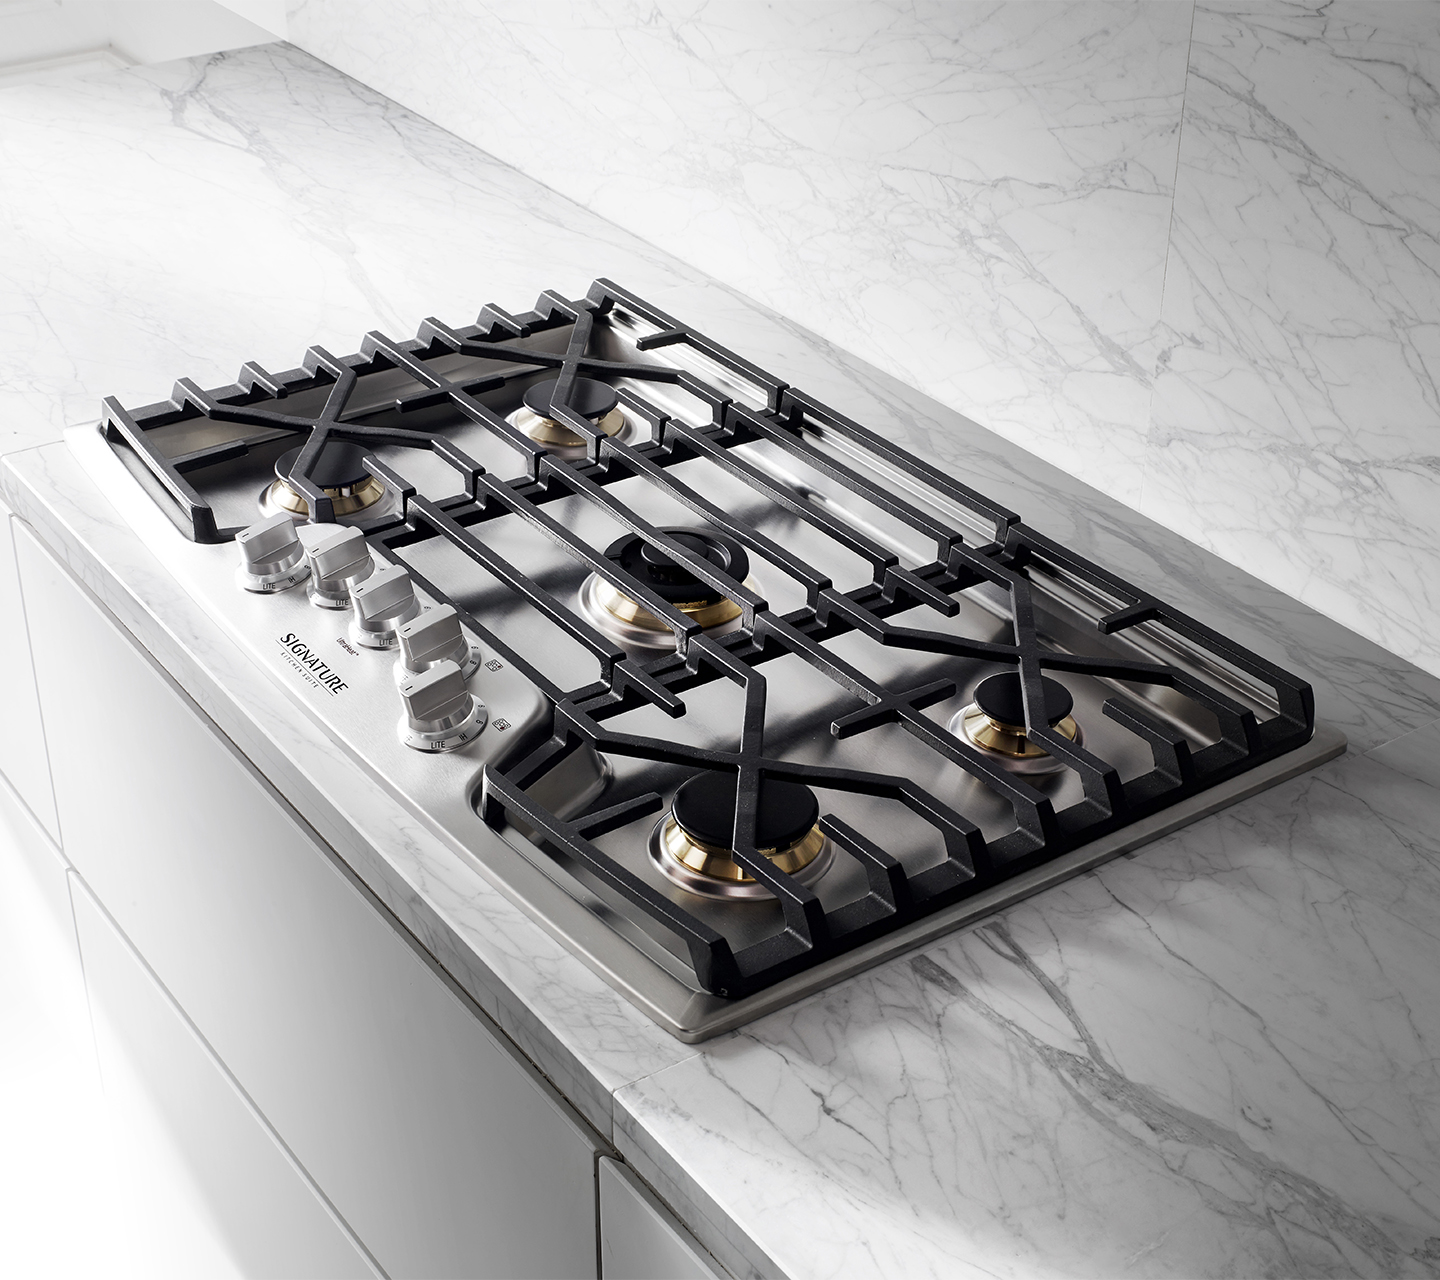 Gas cooktop with cast iron grates from Signature Kitchen Suite